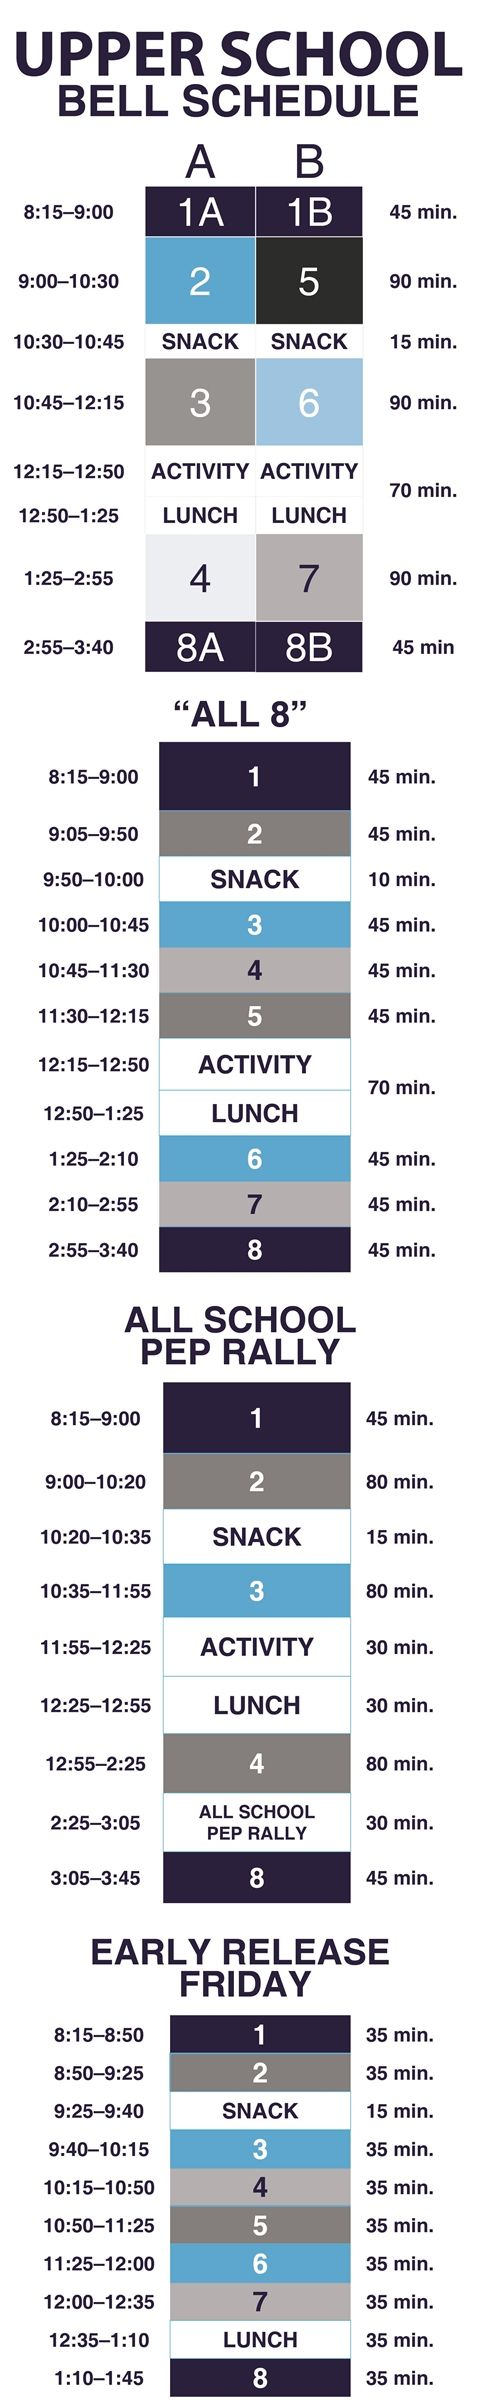 2018-2019 Upper School Bell Schedule